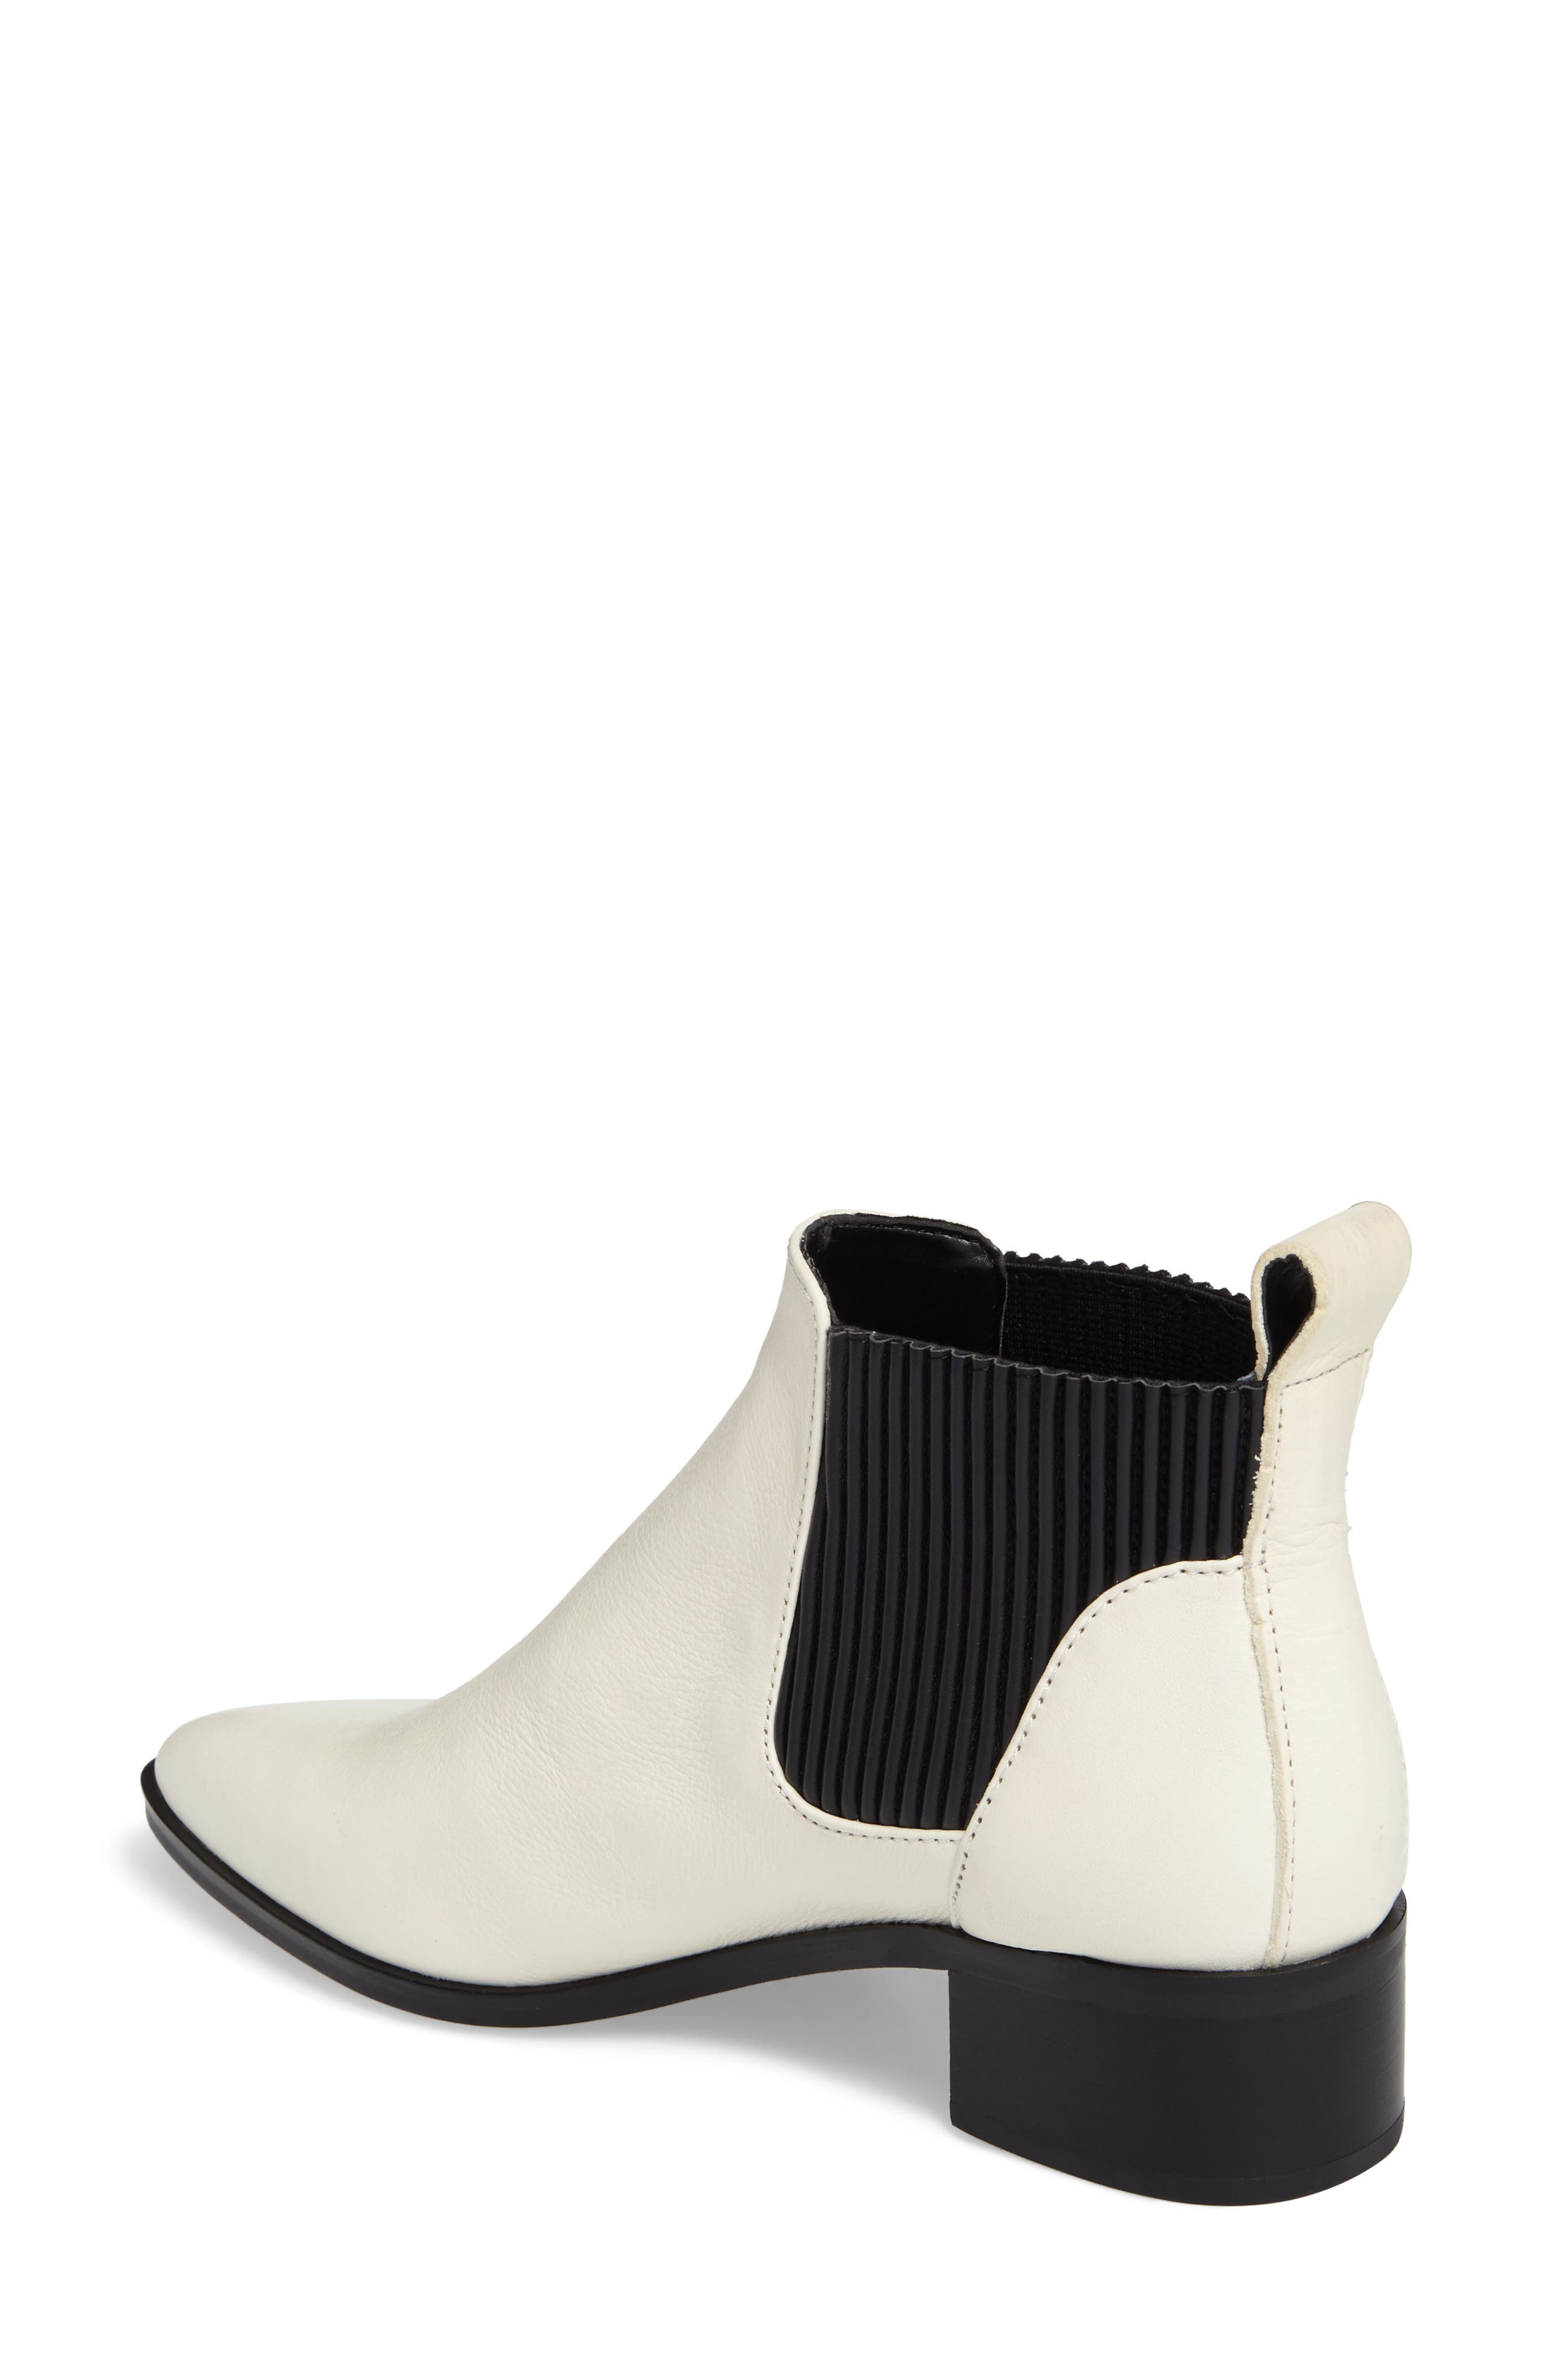 Macie Pointy Toe Chelsea Bootie,                             Alternate thumbnail 2, color,                             Off White Lea